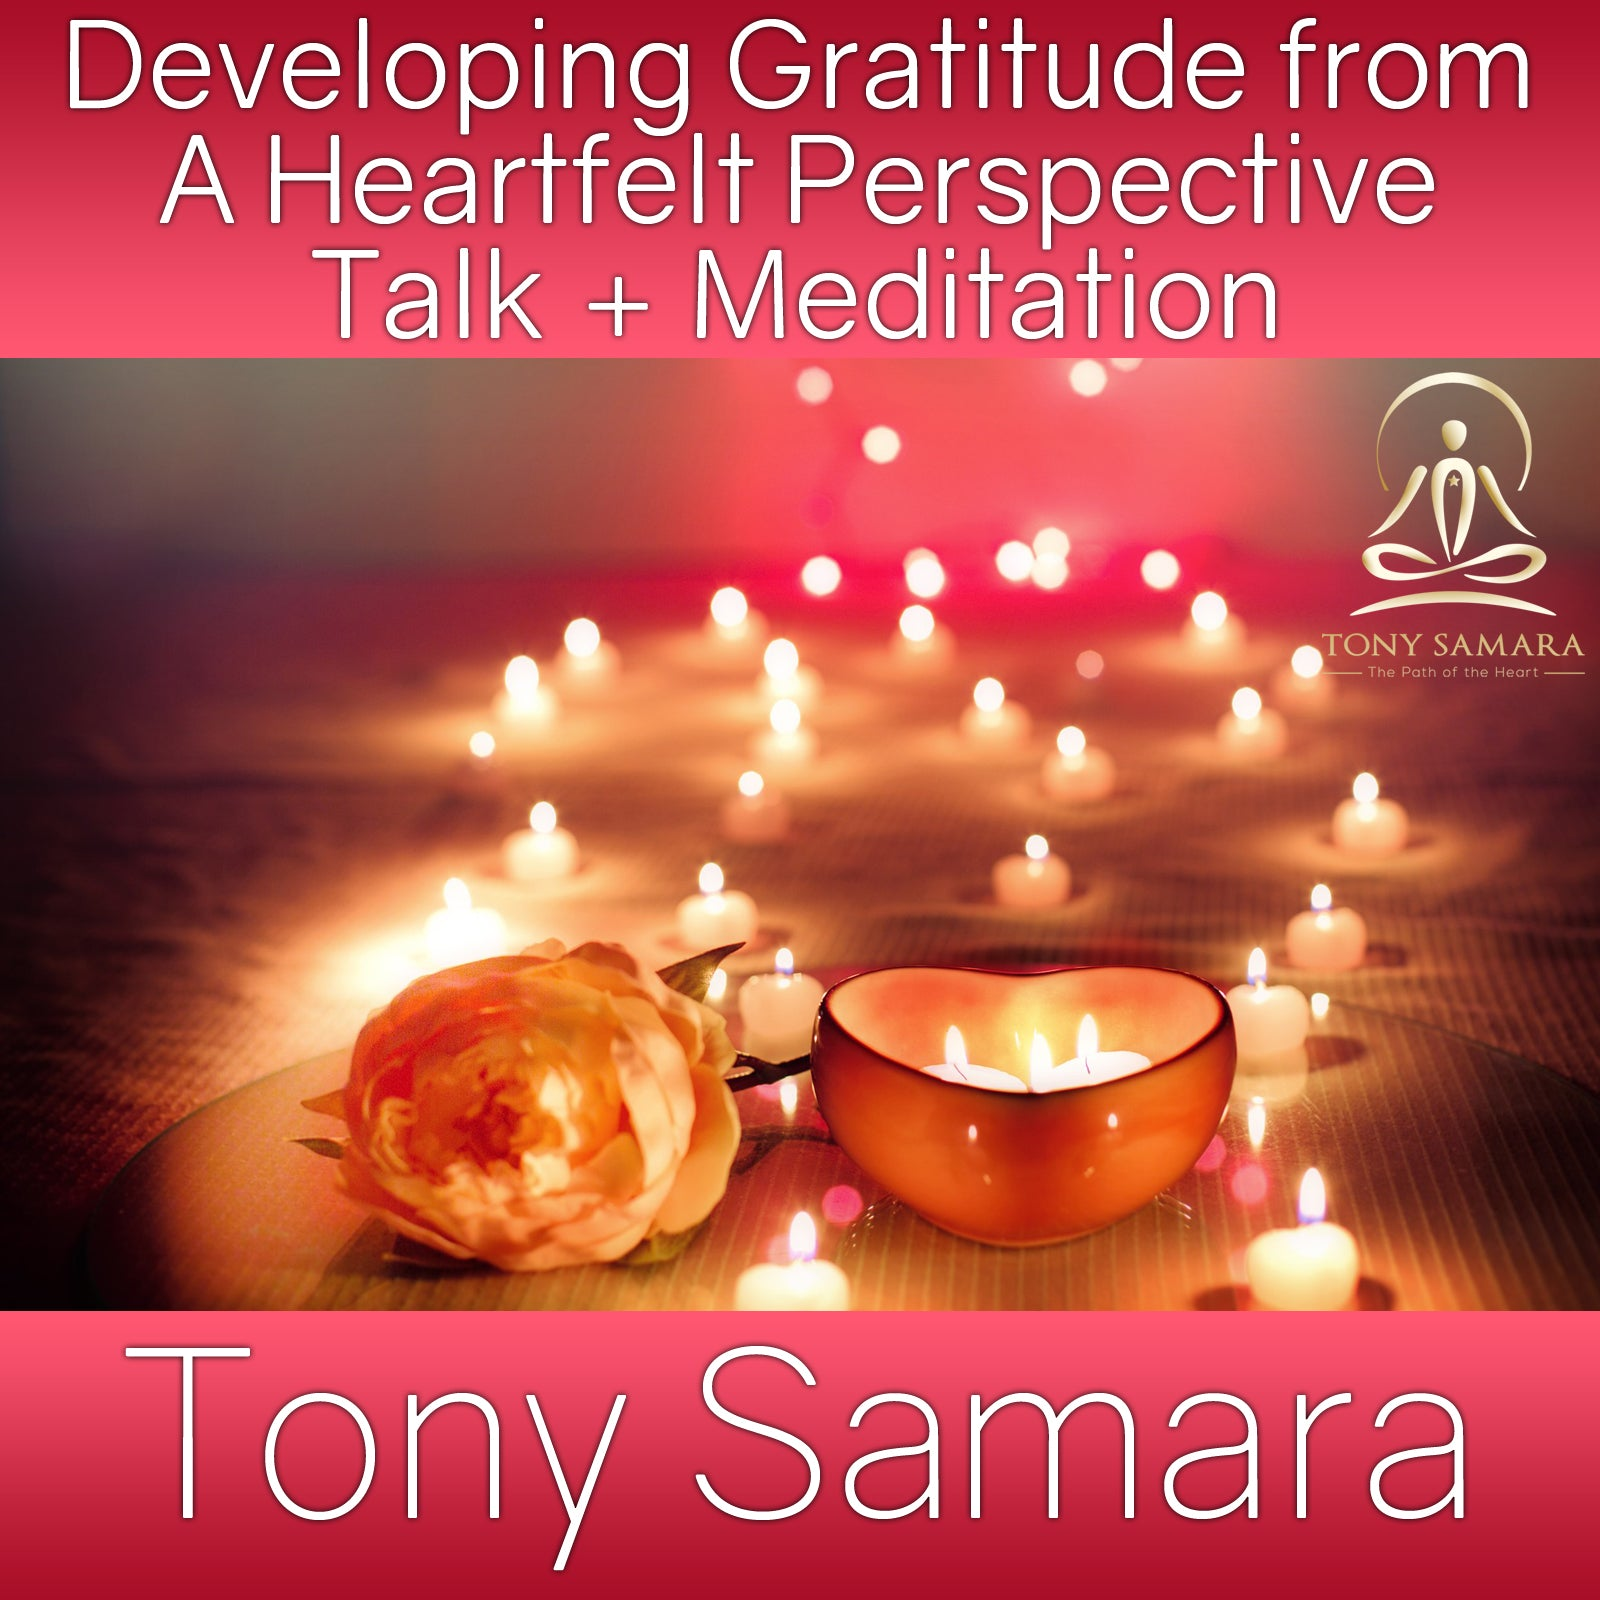 Developing Gratitude from A Heartfelt Perspective Talk + Meditation (MP3 Audio Download) - Tony Samara Meditation